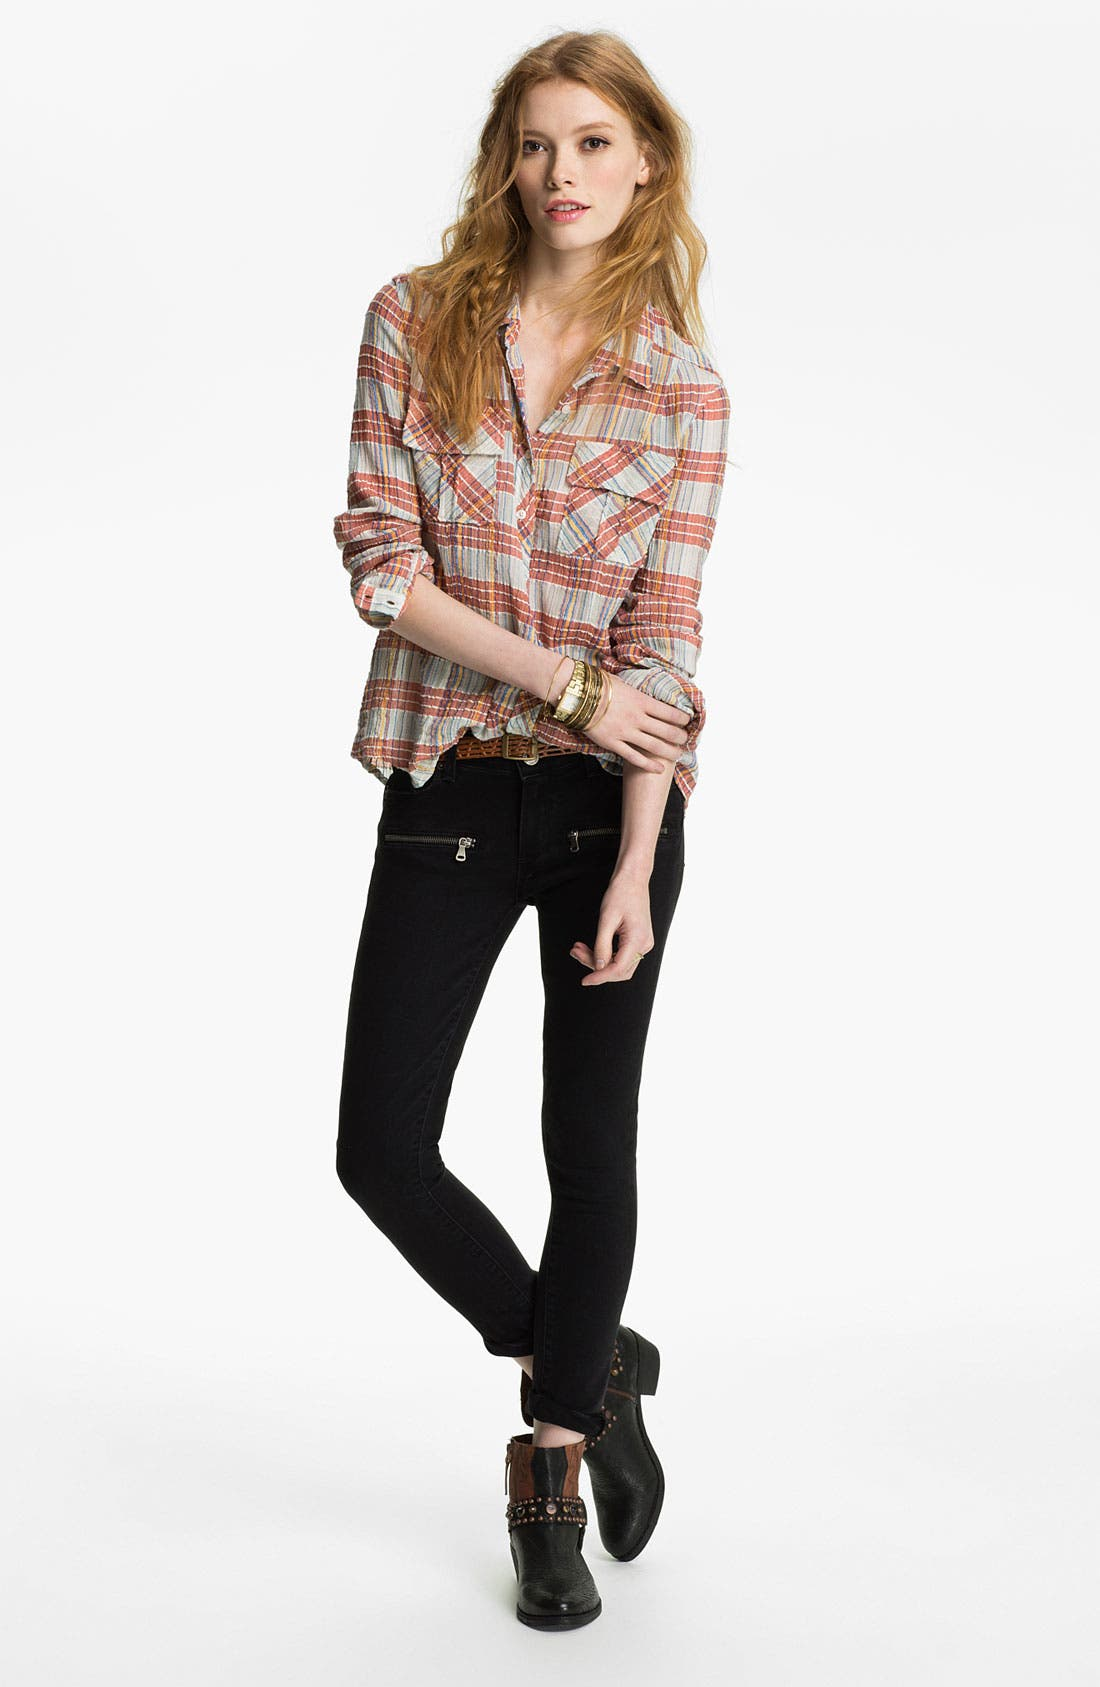 Main Image - Free People Shirt & Paige Jeans